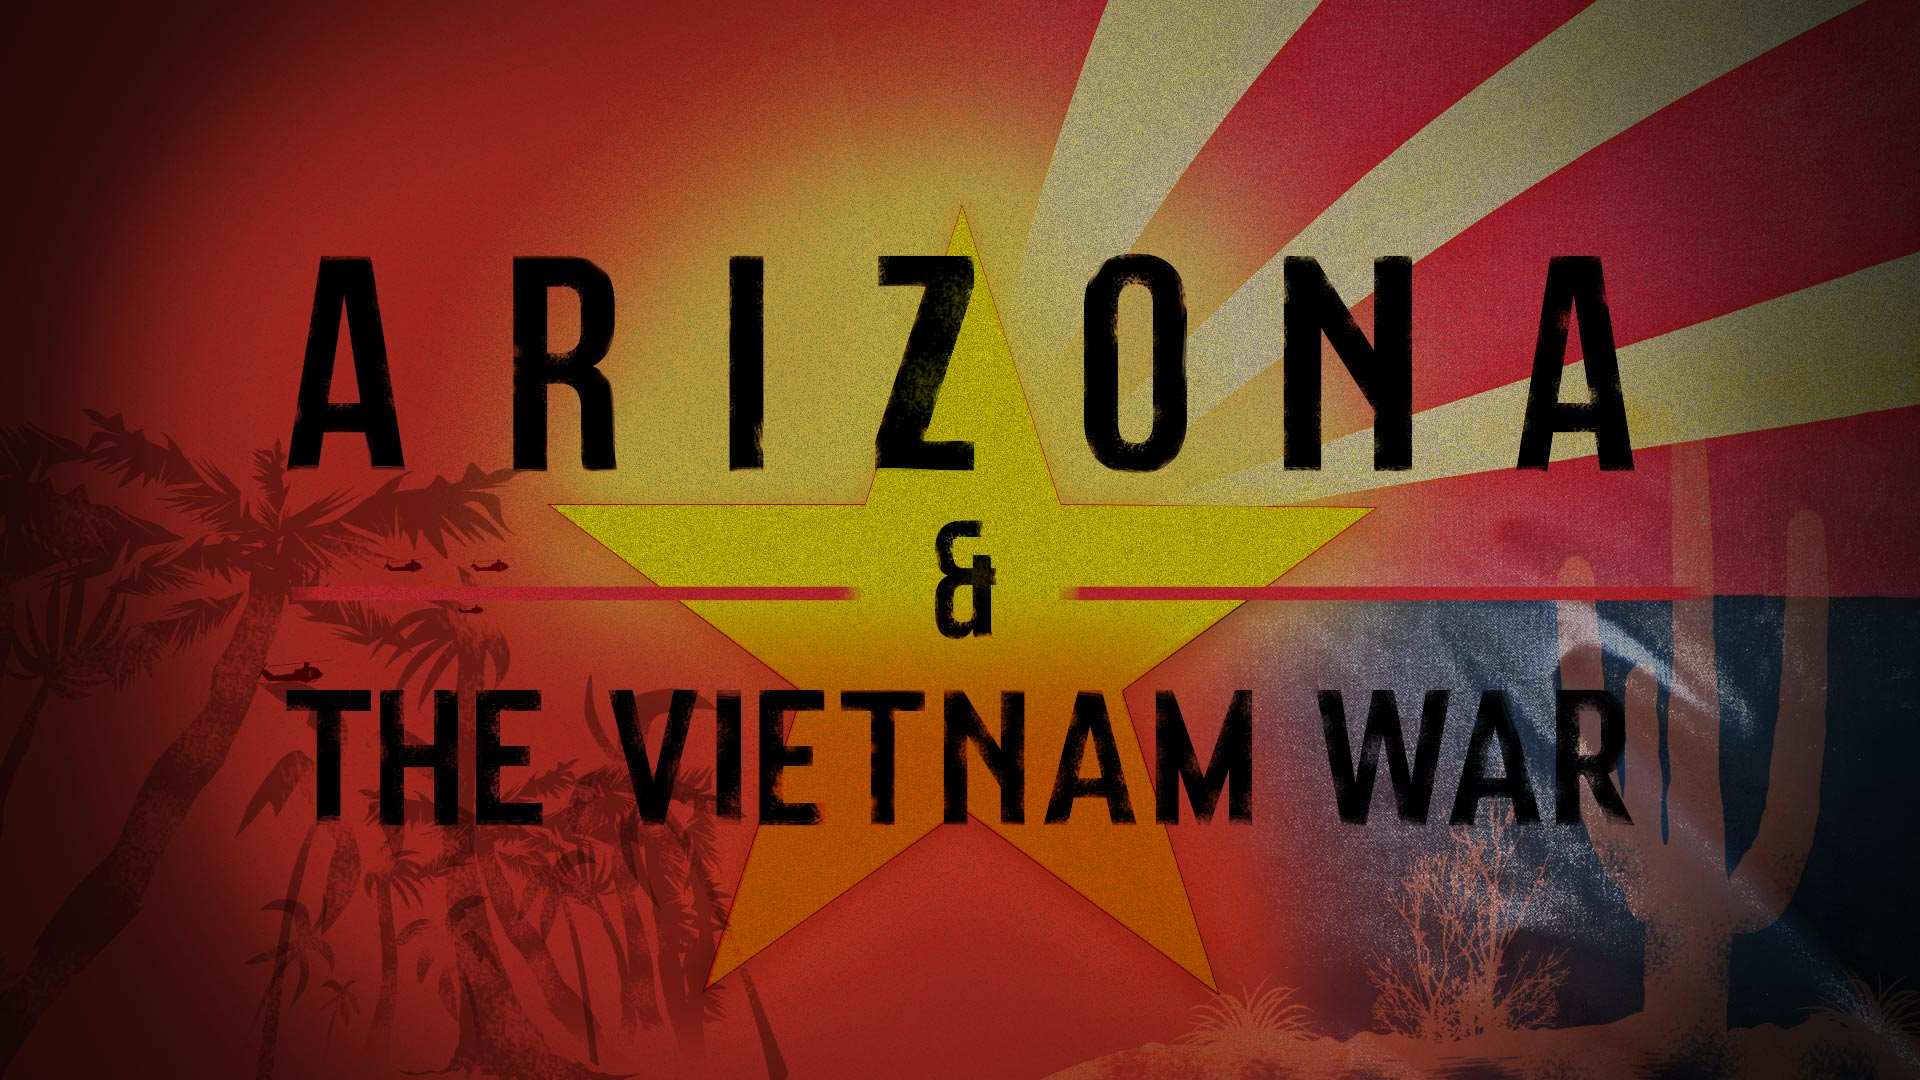 Arizona and Vietnam War hero